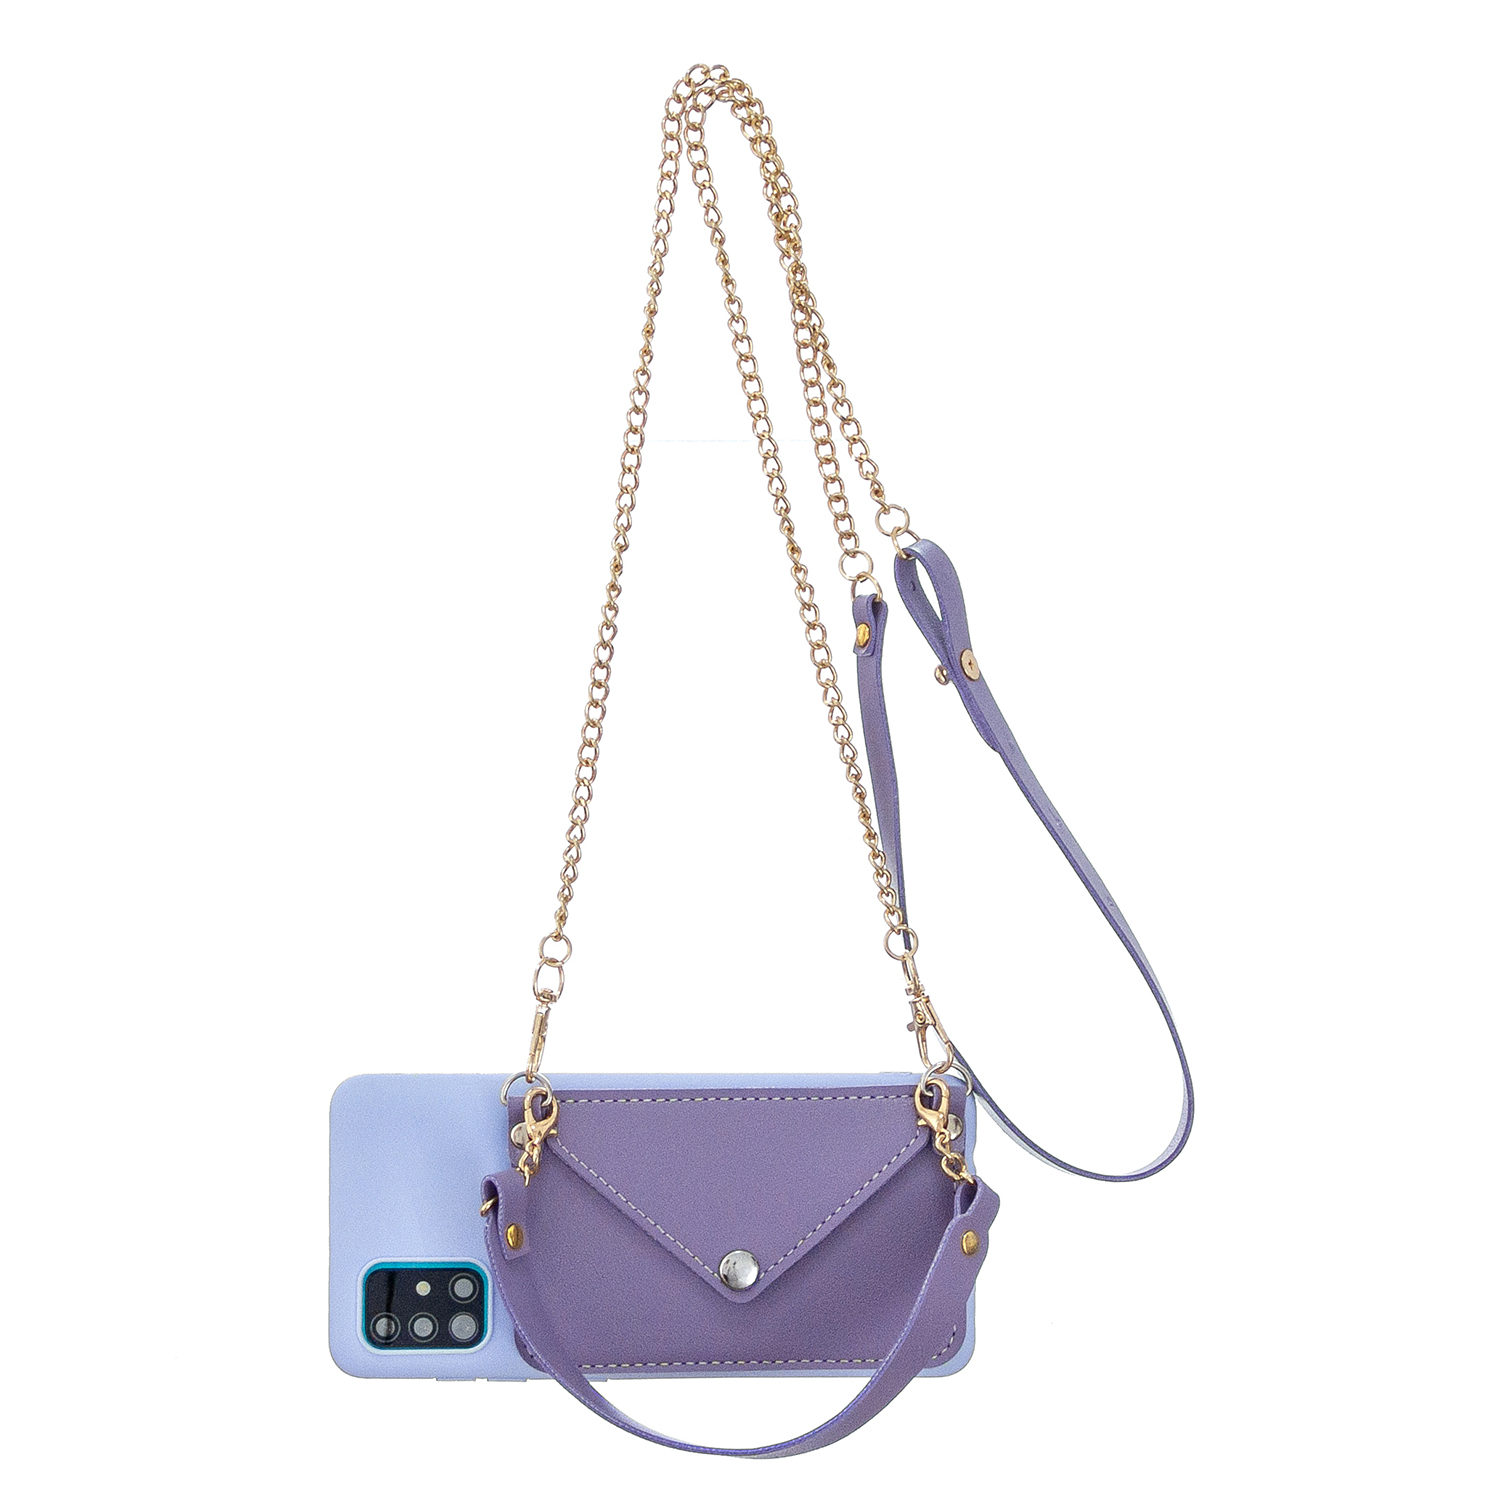 For HUAWEI P40/P40 Lite/P40 Pro Mobile Phone Cover with Pu Leather Card Holder + Hand Rope + Straddle Rope purple